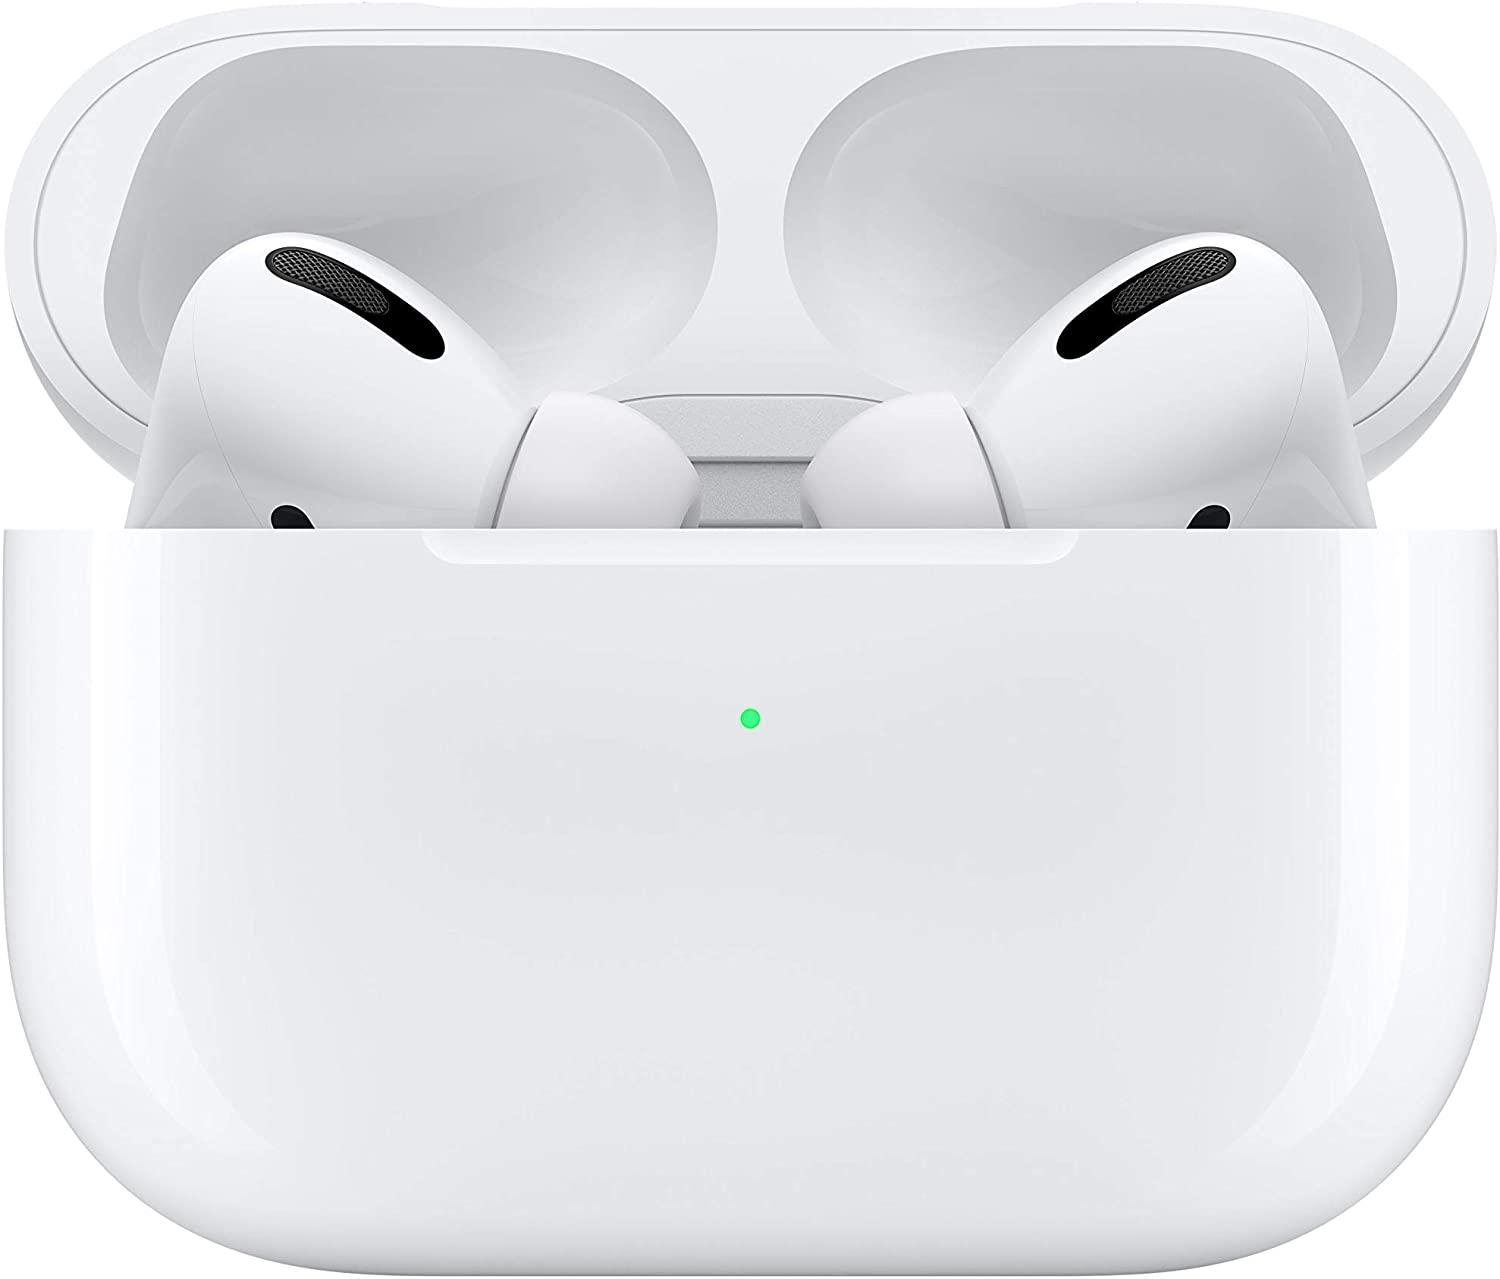 Airpods pro, great airpods for travellers